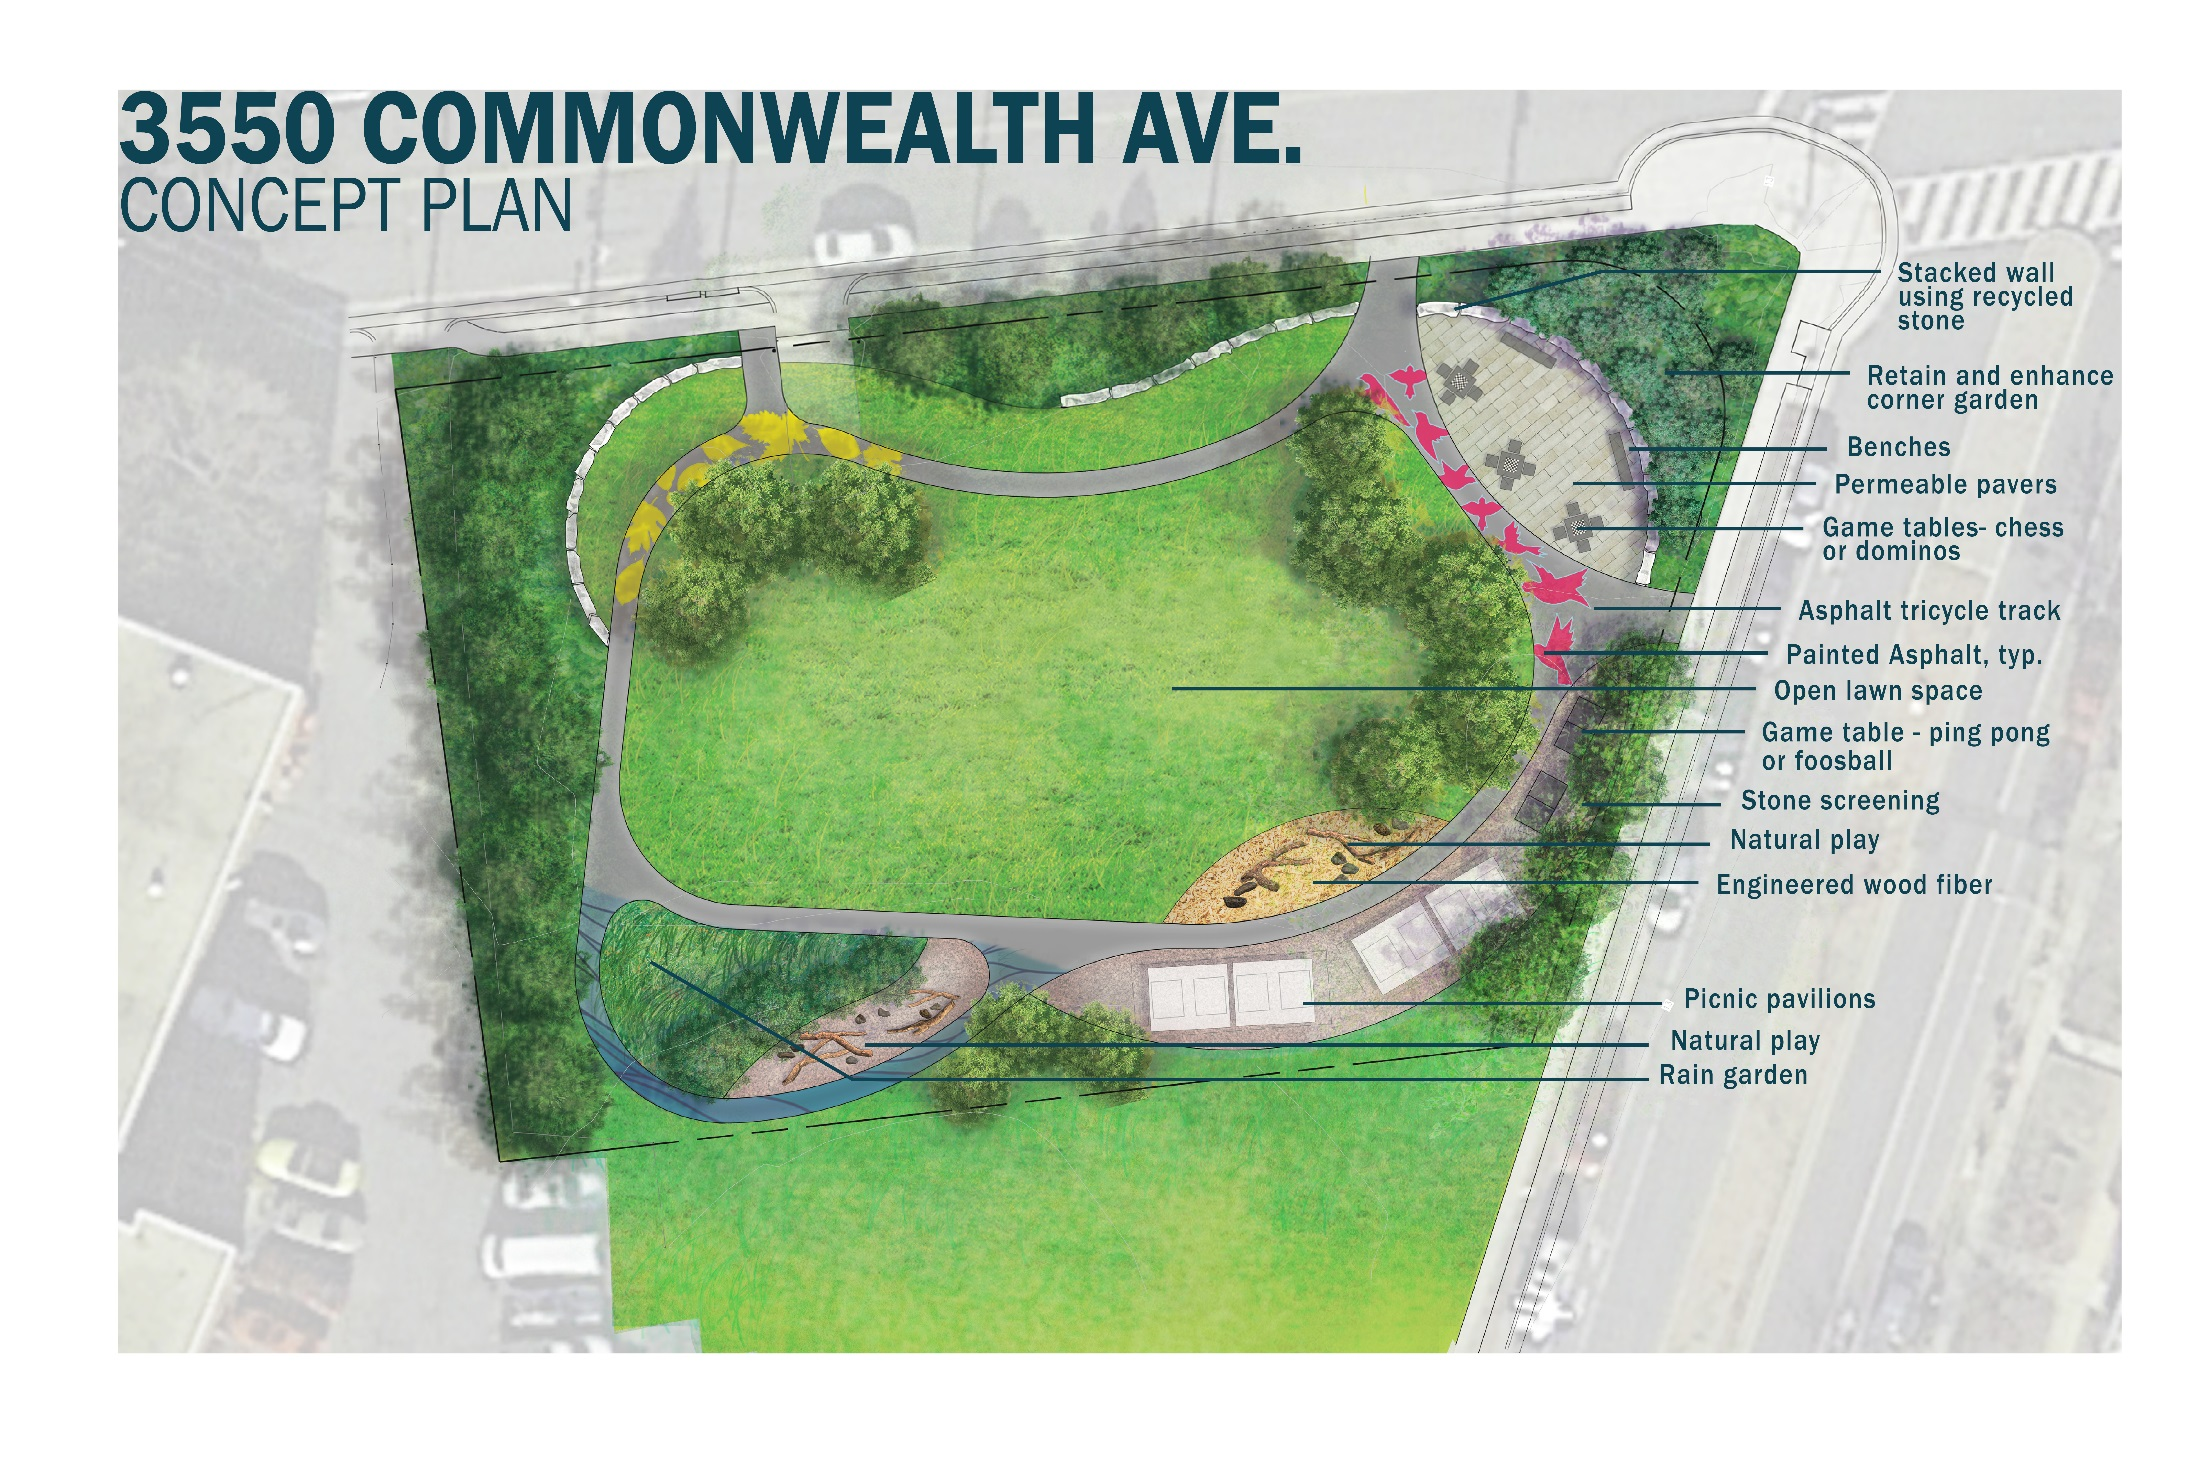 The City of Alexandria is soliciting feedback on the name of the park at 3550 Commonwealth Avenue in the Arlandria neighborhood of Alexandria, Virginia.